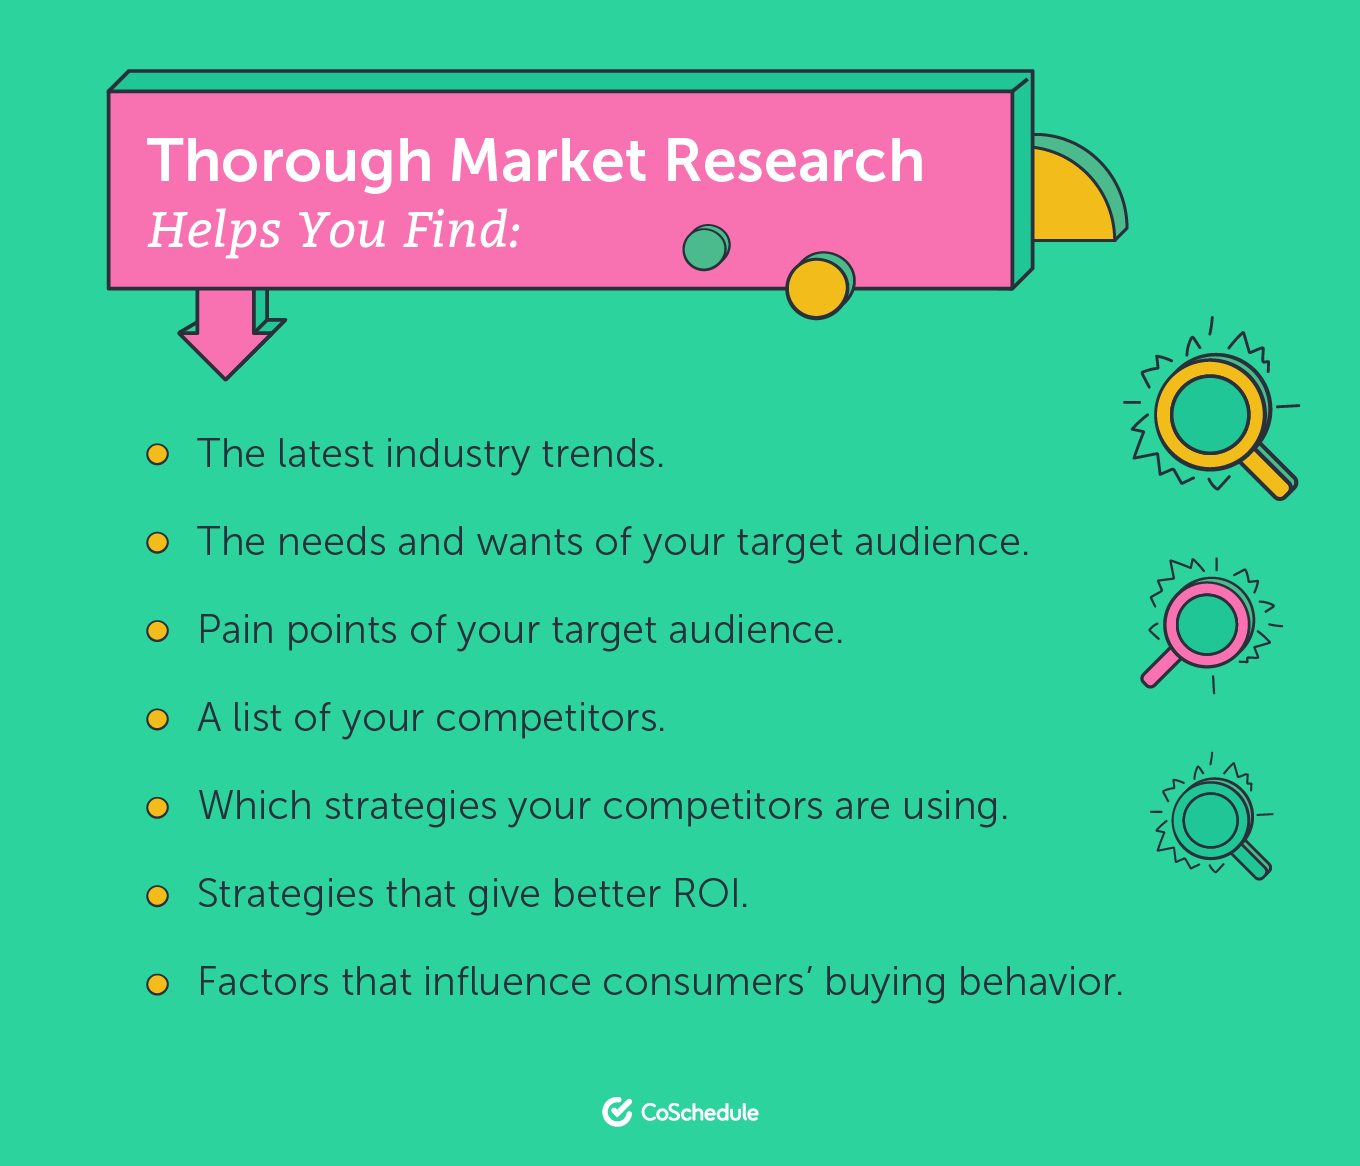 What market research helps with